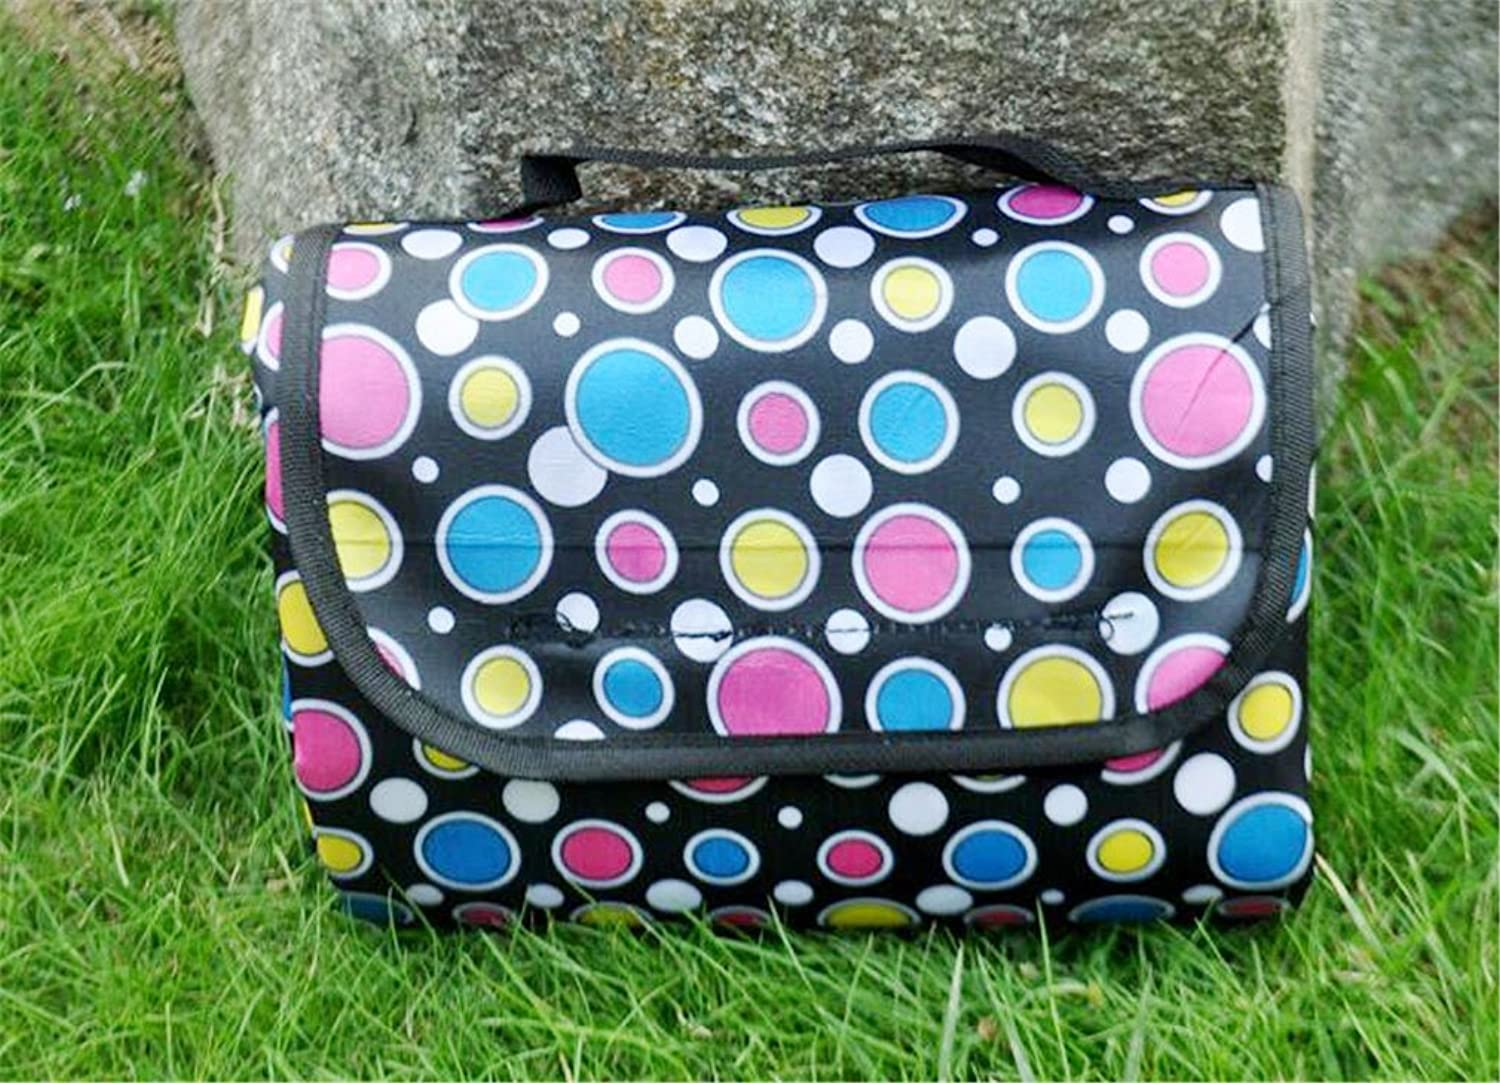 Large Outdoor Picnic Blanket,200 X 150 cm WaterResistant Sandproof Handy Mat Tote Great for The Beach,Black